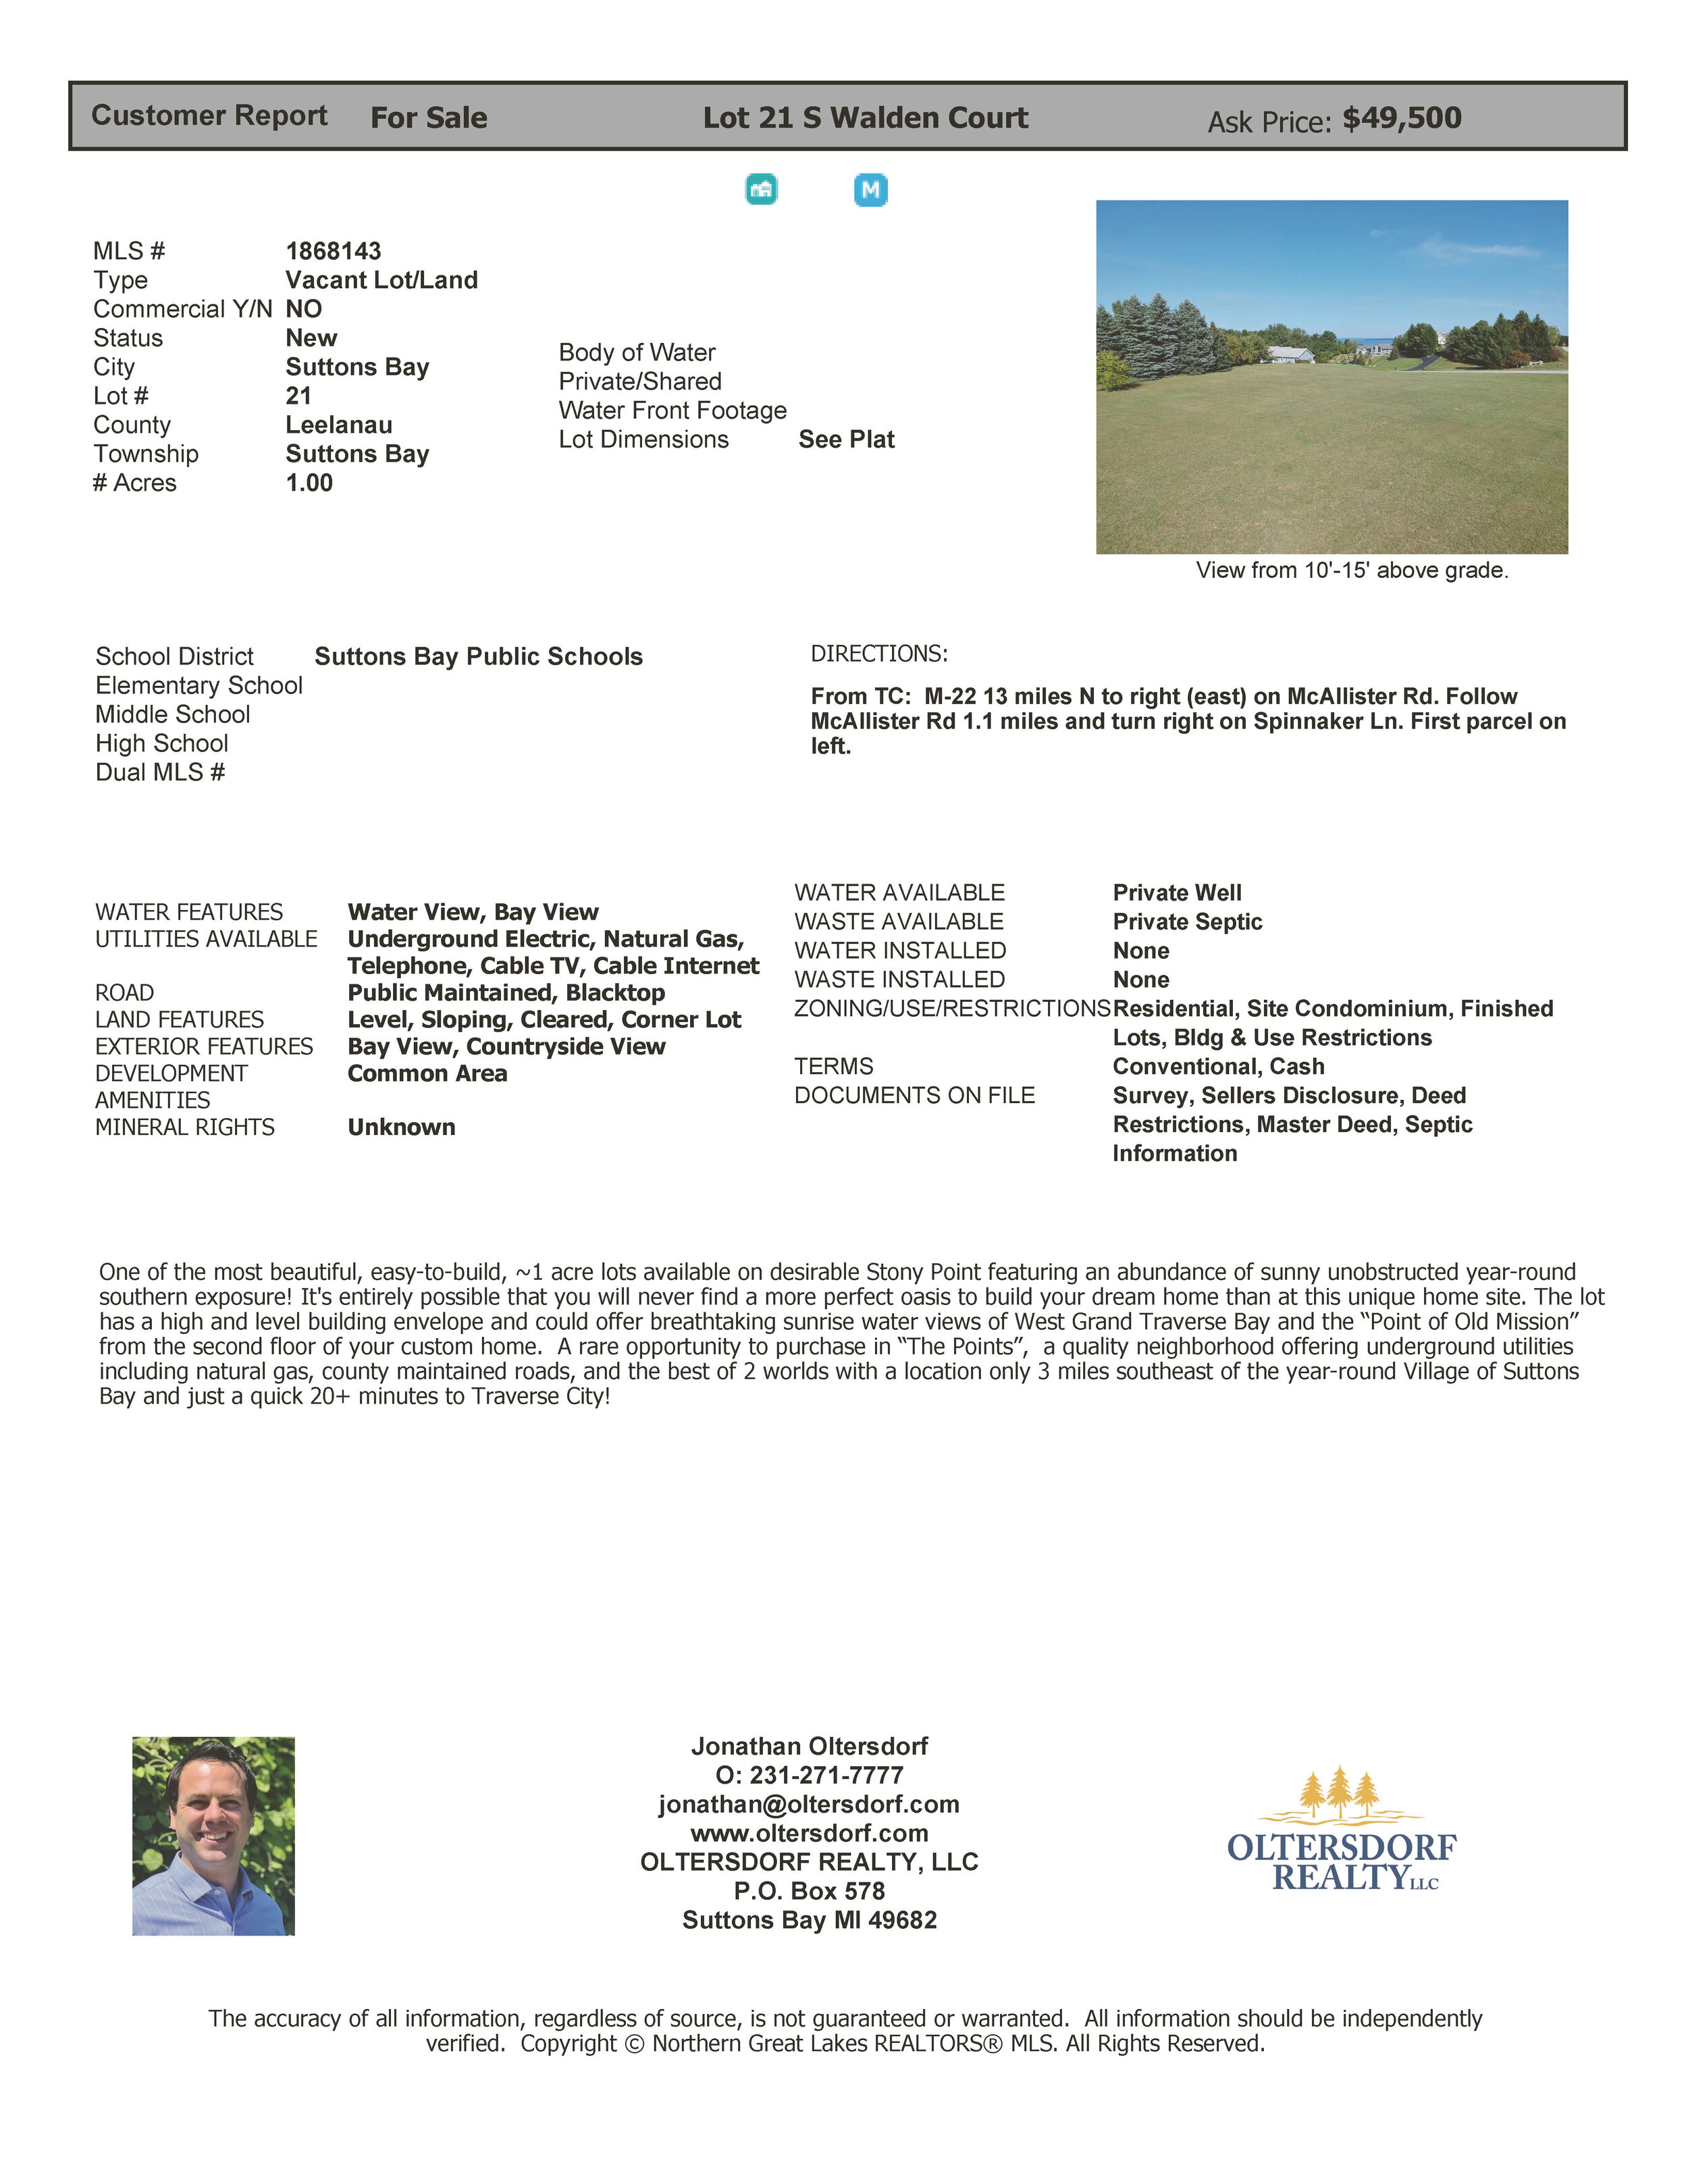 Lot 21 – S Walden Court, Suttons Bay, MI – Water View Vacant Lot Marketing Packet (4).jpg